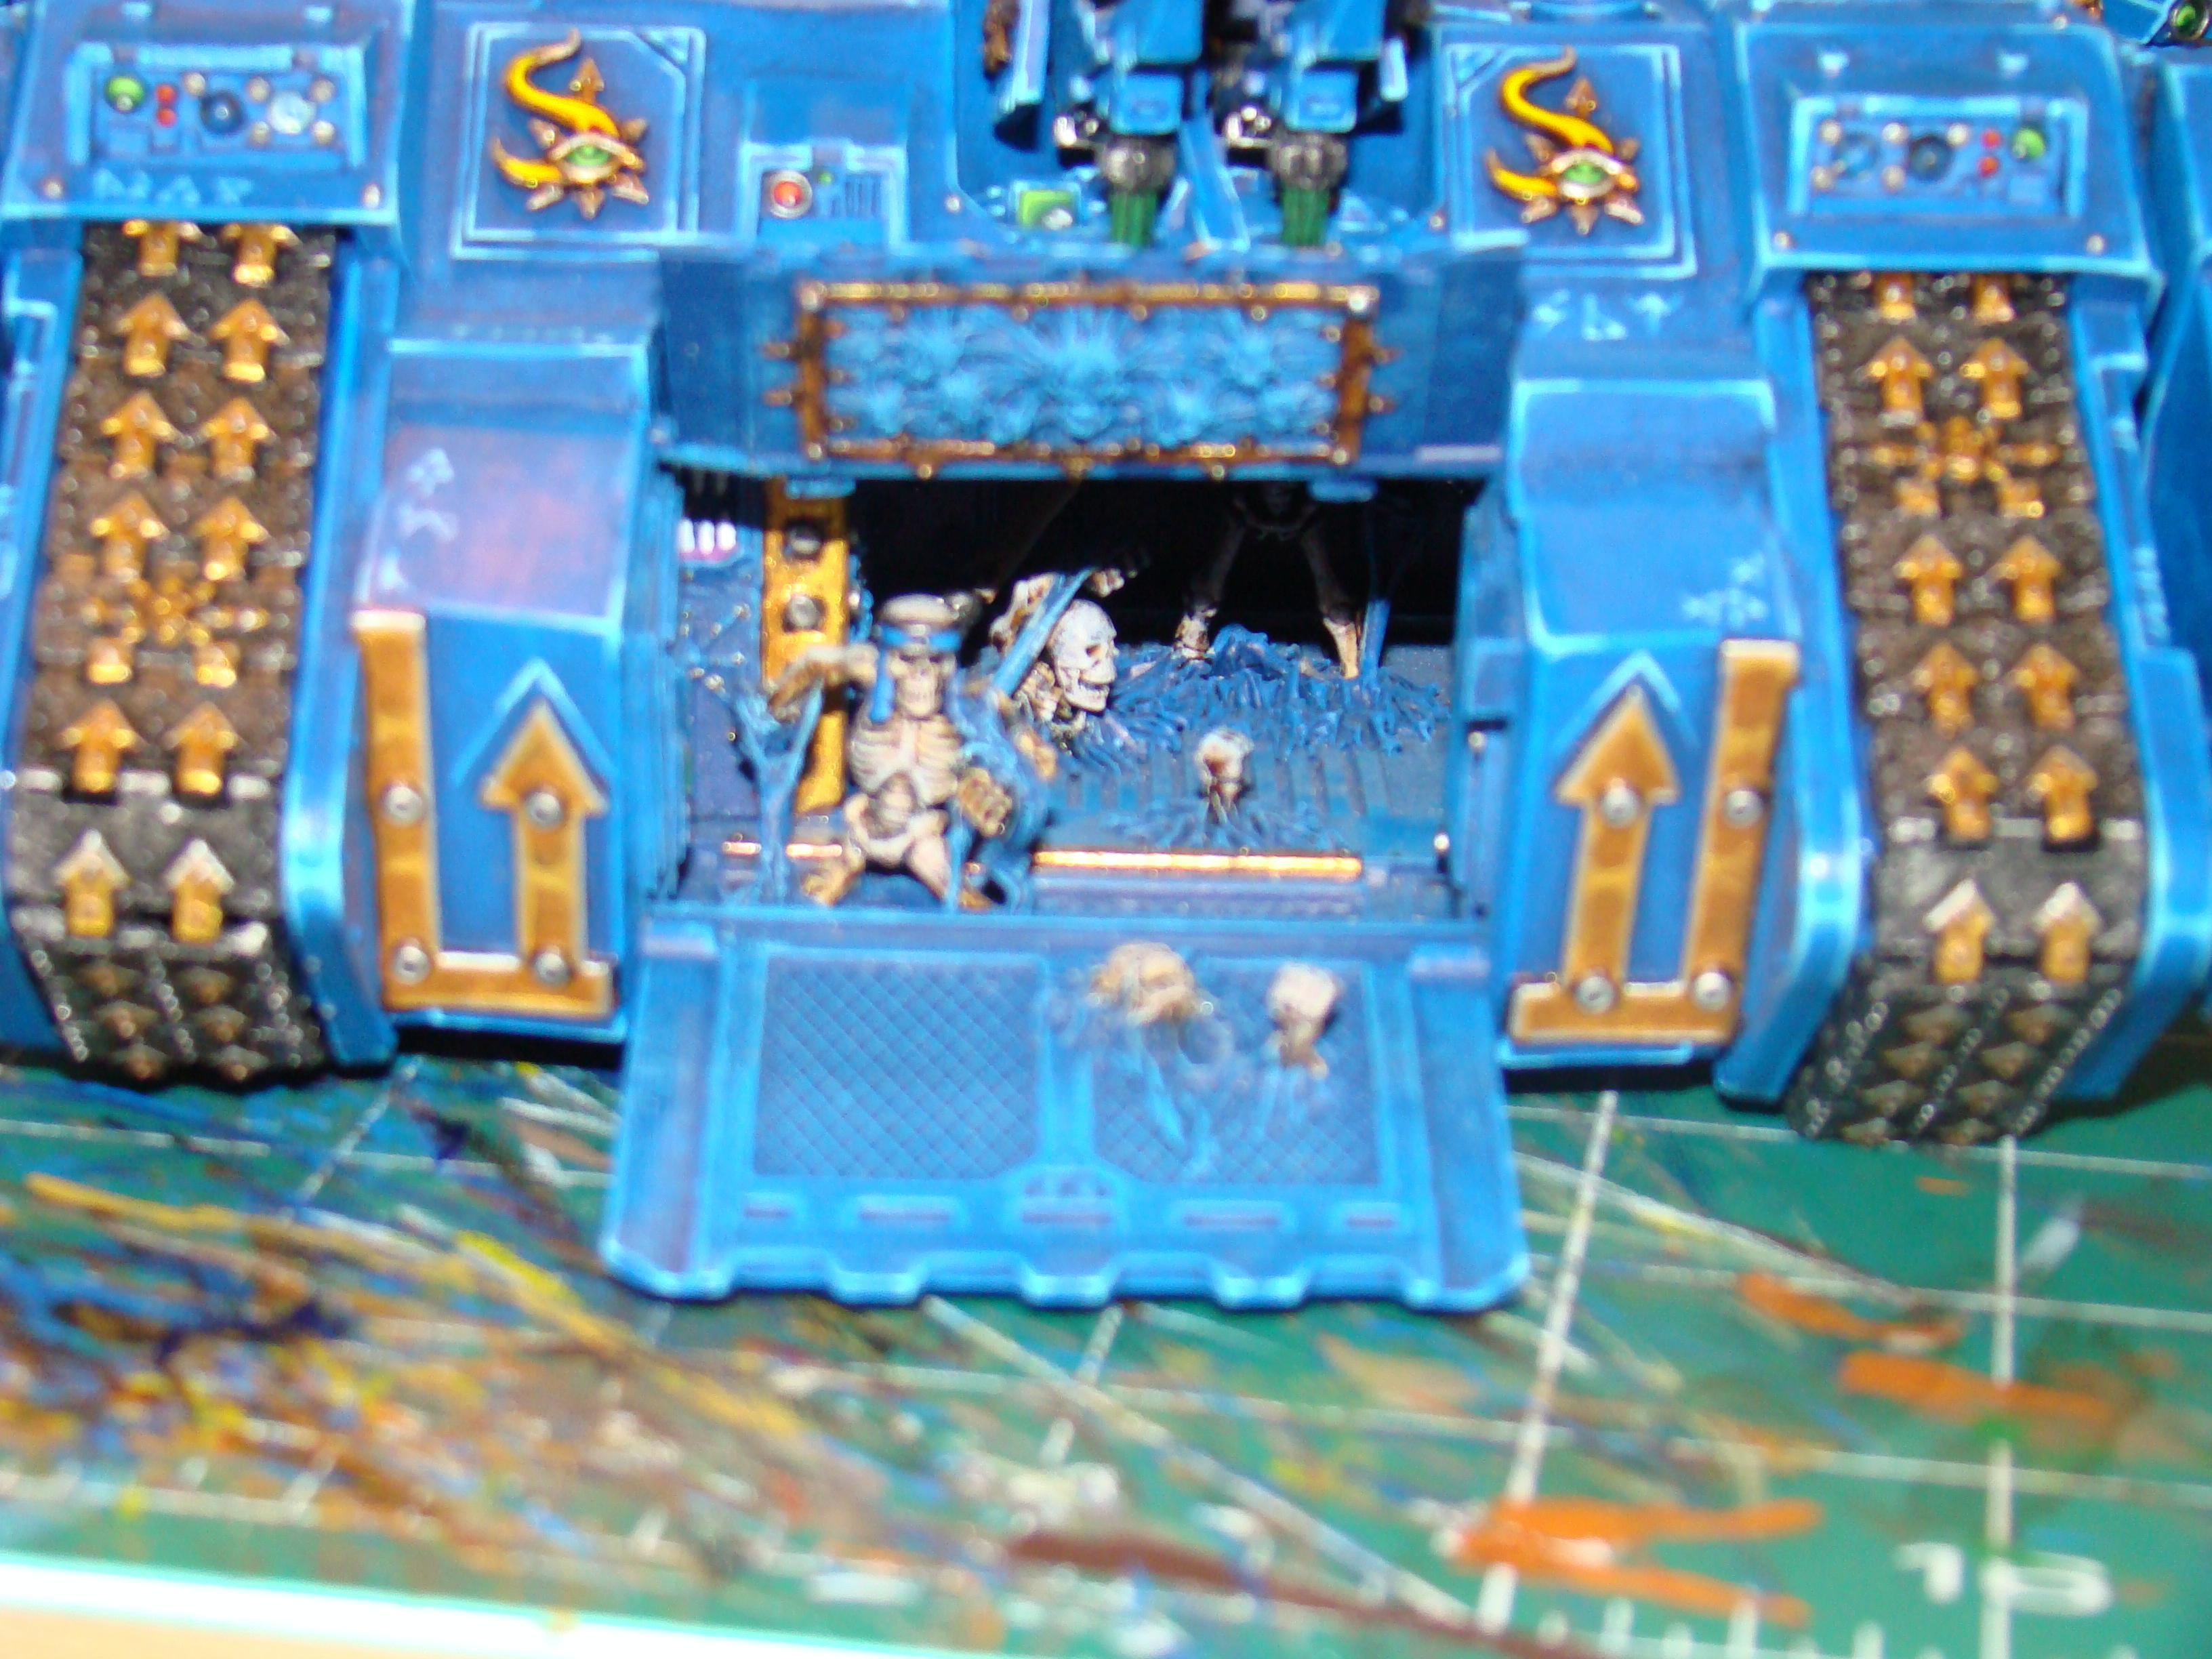 Blurred Photo, Chaos, Chaos Space Marines, Land Raider, Tank, Thousand Sons, Tzeentch, Vehicle, Warhammer 40,000